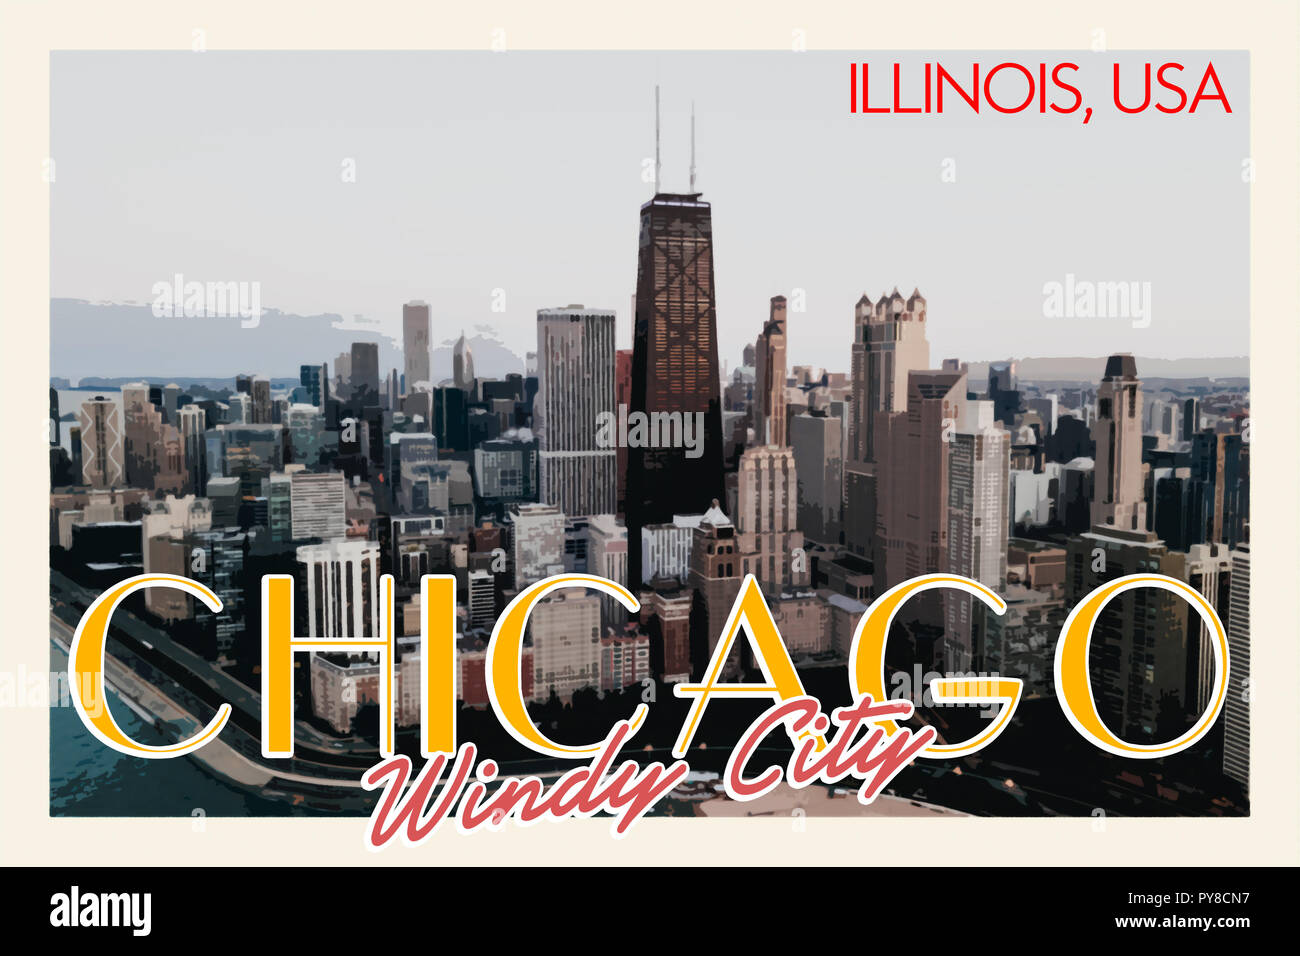 Chicago Travel Poster - Stock Image